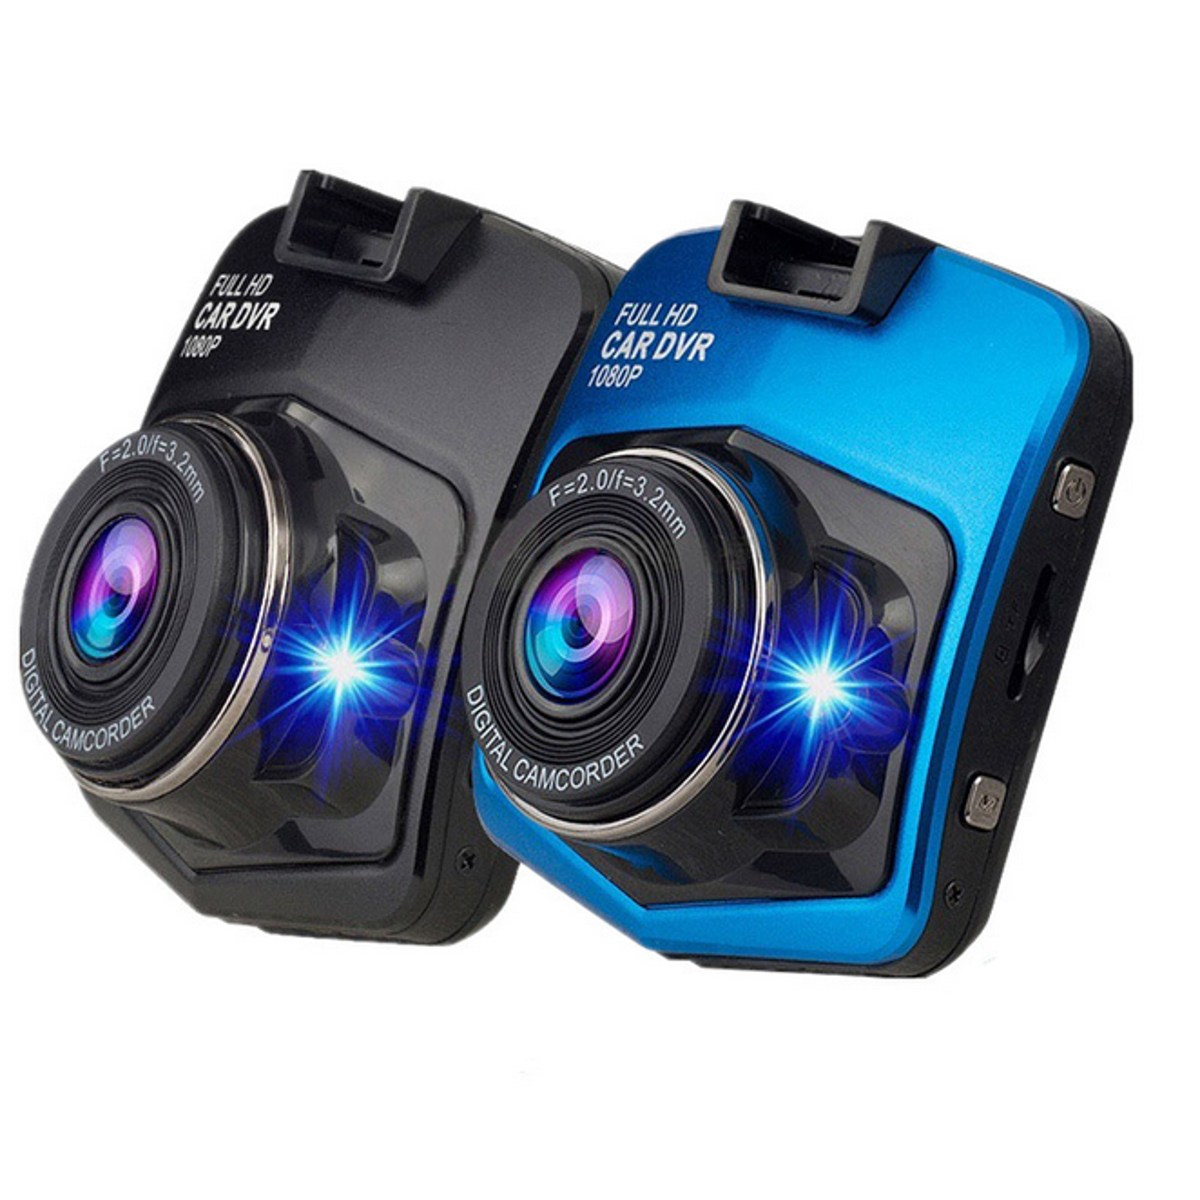 Full HD 1080P Car DVR Video Camera On Cam Dash Camera Car Camcorder 2.4Inch G-Sensor Dash Cam Recorder Night Vision автомобильный видеорегистратор k6000 car camera car dvr 1080p full hd k6000 25fps g 140